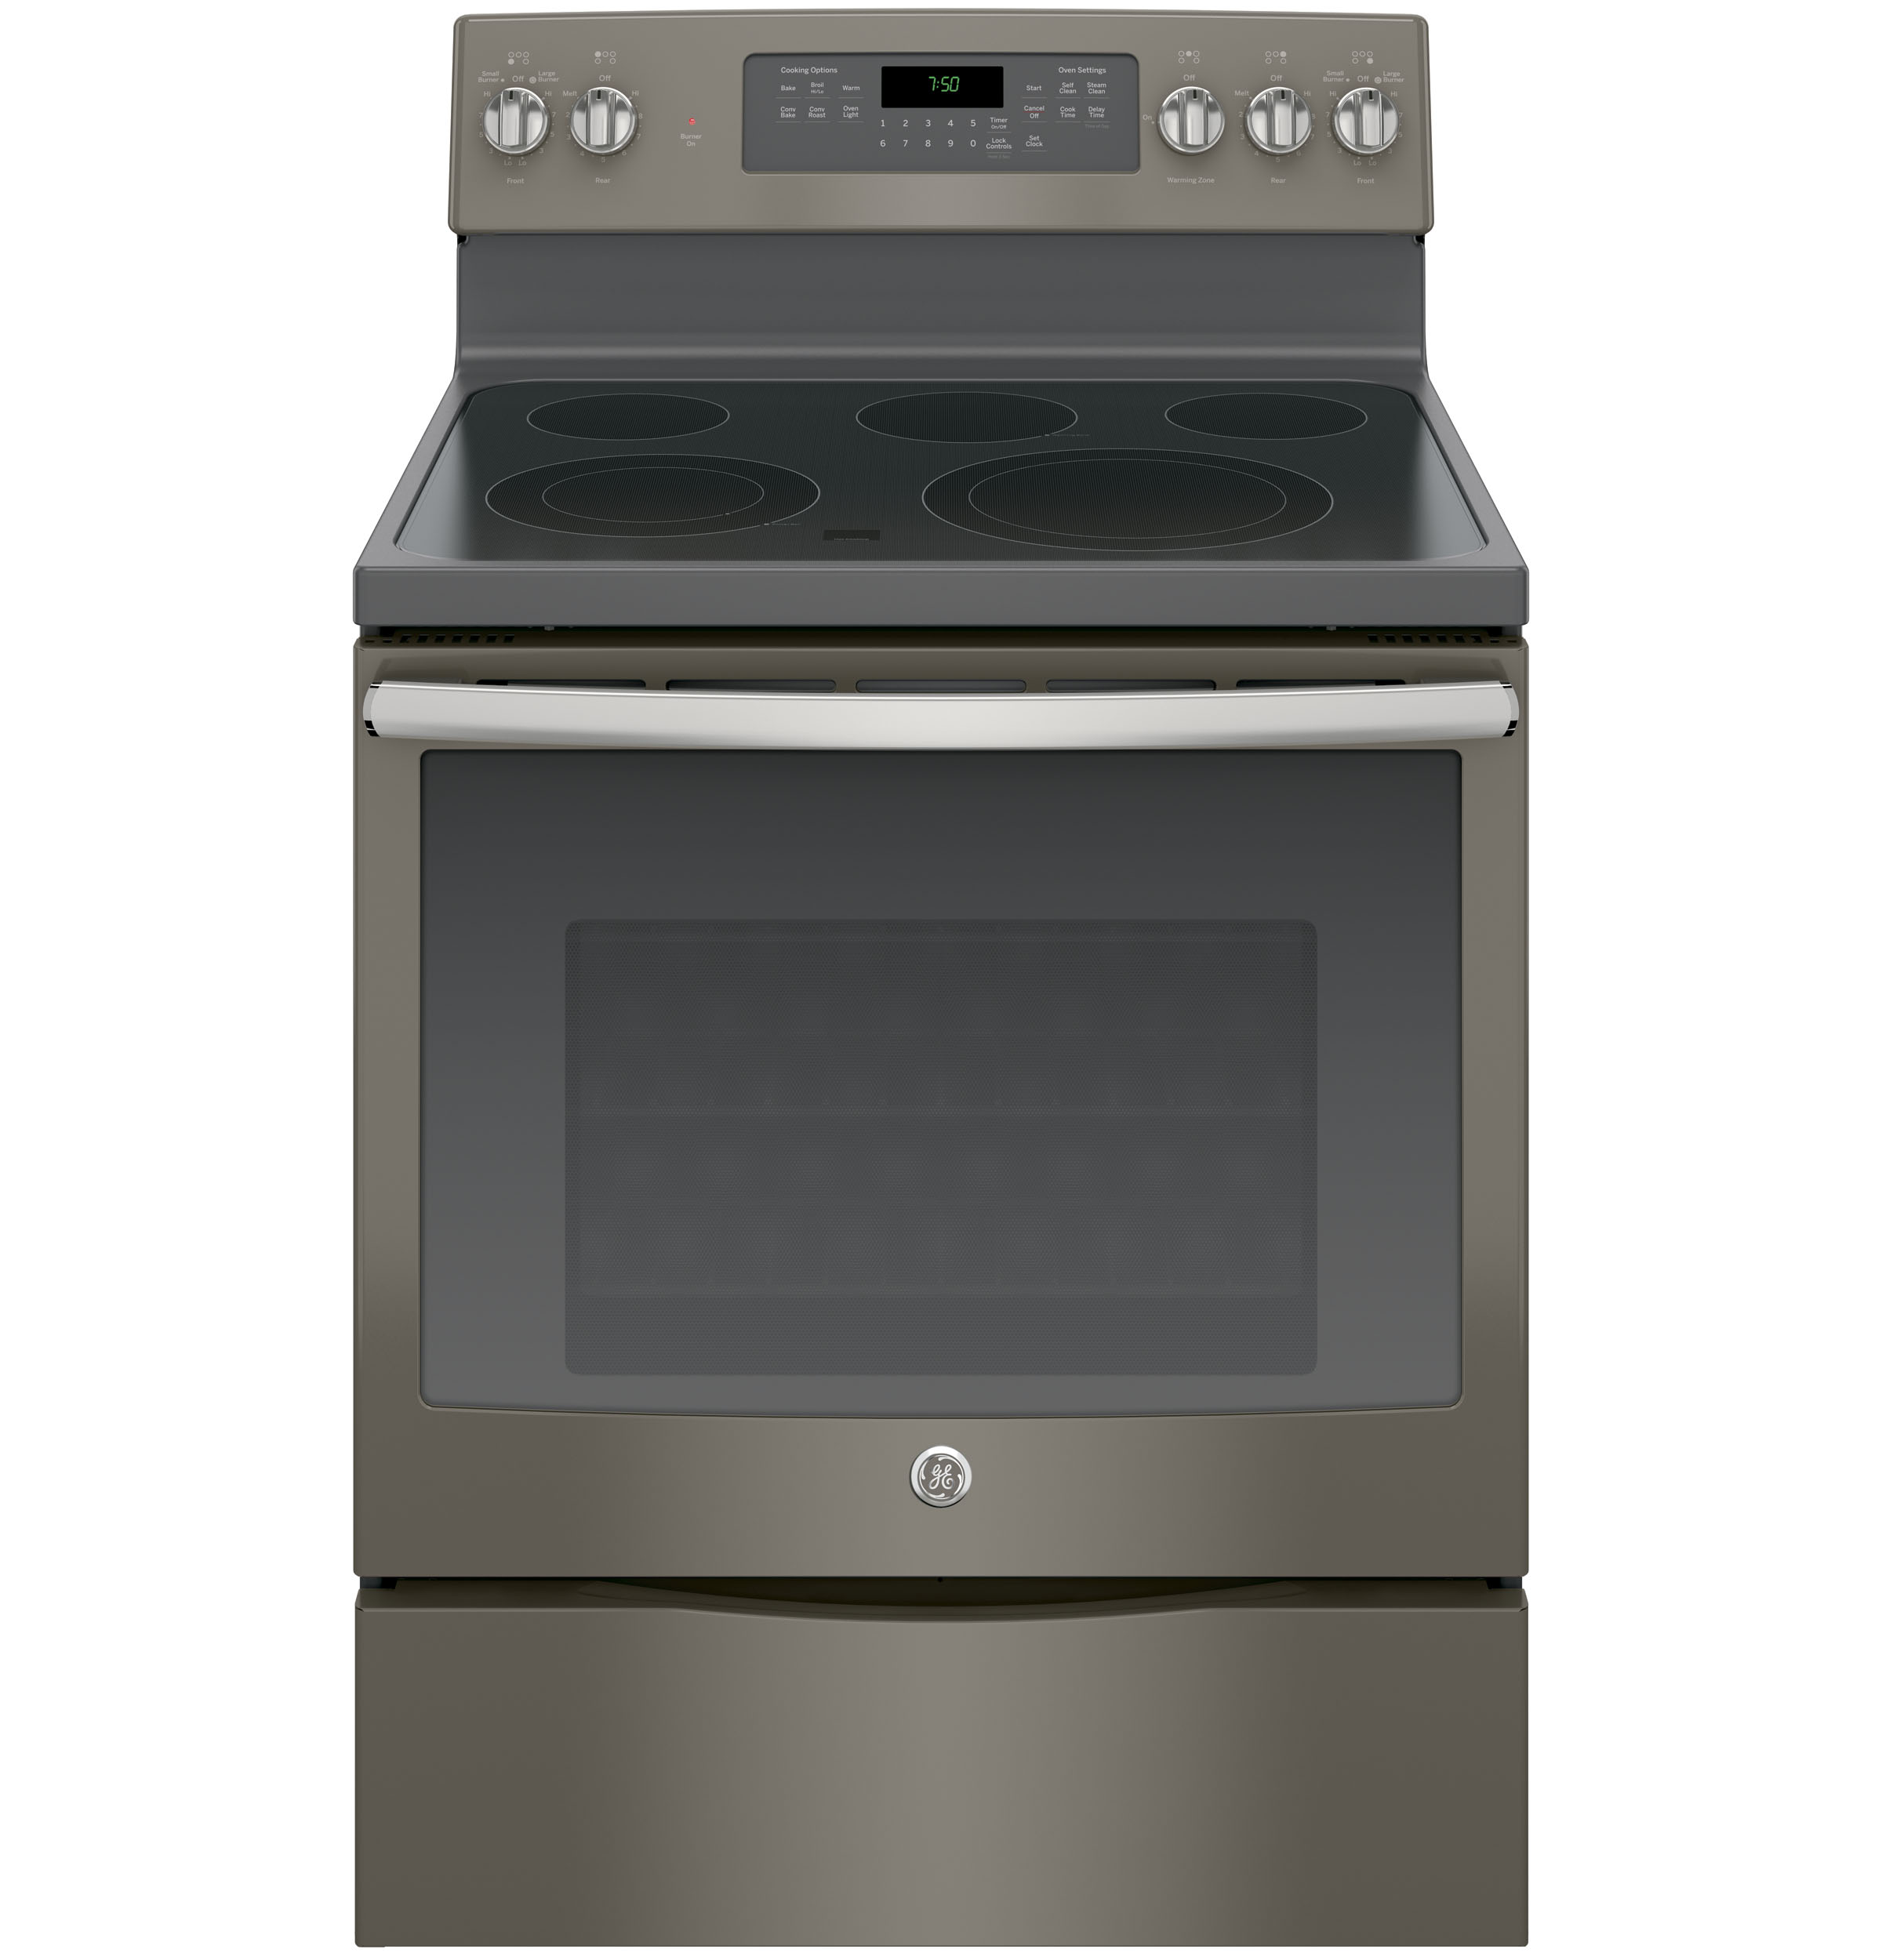 "GE Appliances GE Electric Ranges 30"" Electric Convection Range - Item Number: JB750EJES"